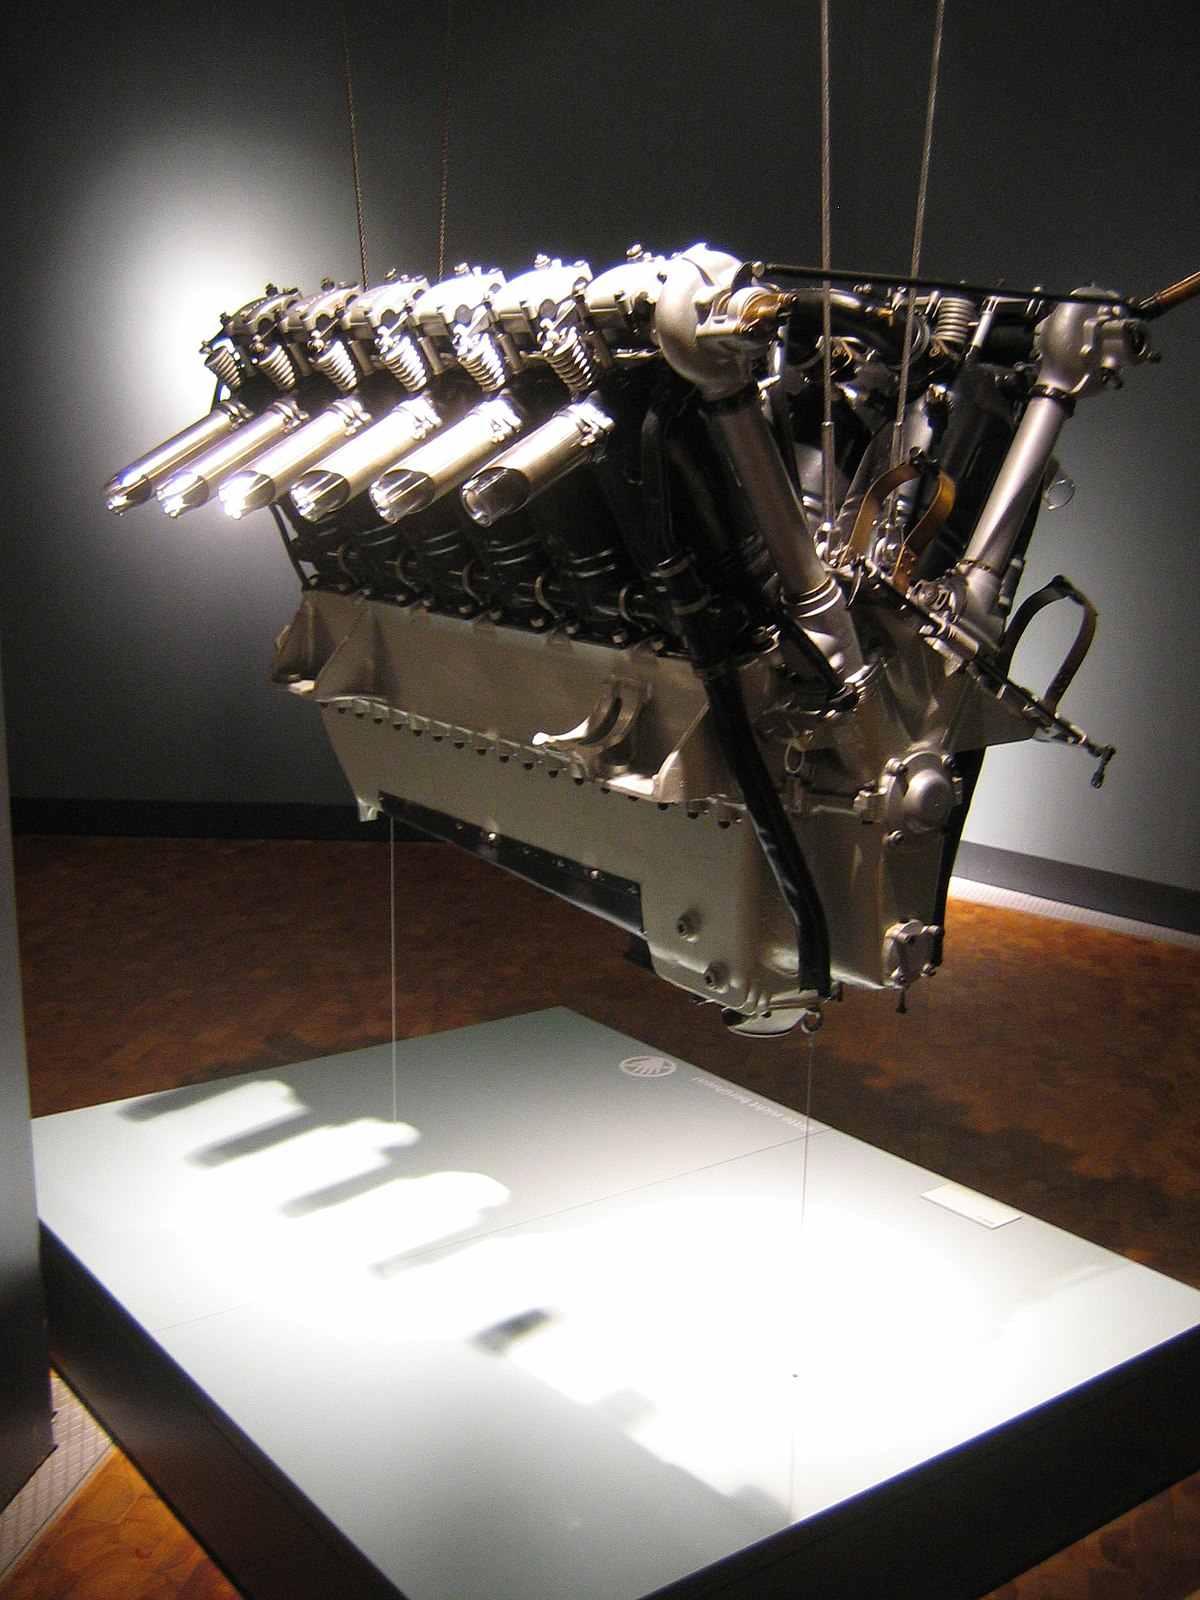 V12 engine - Wikipedia